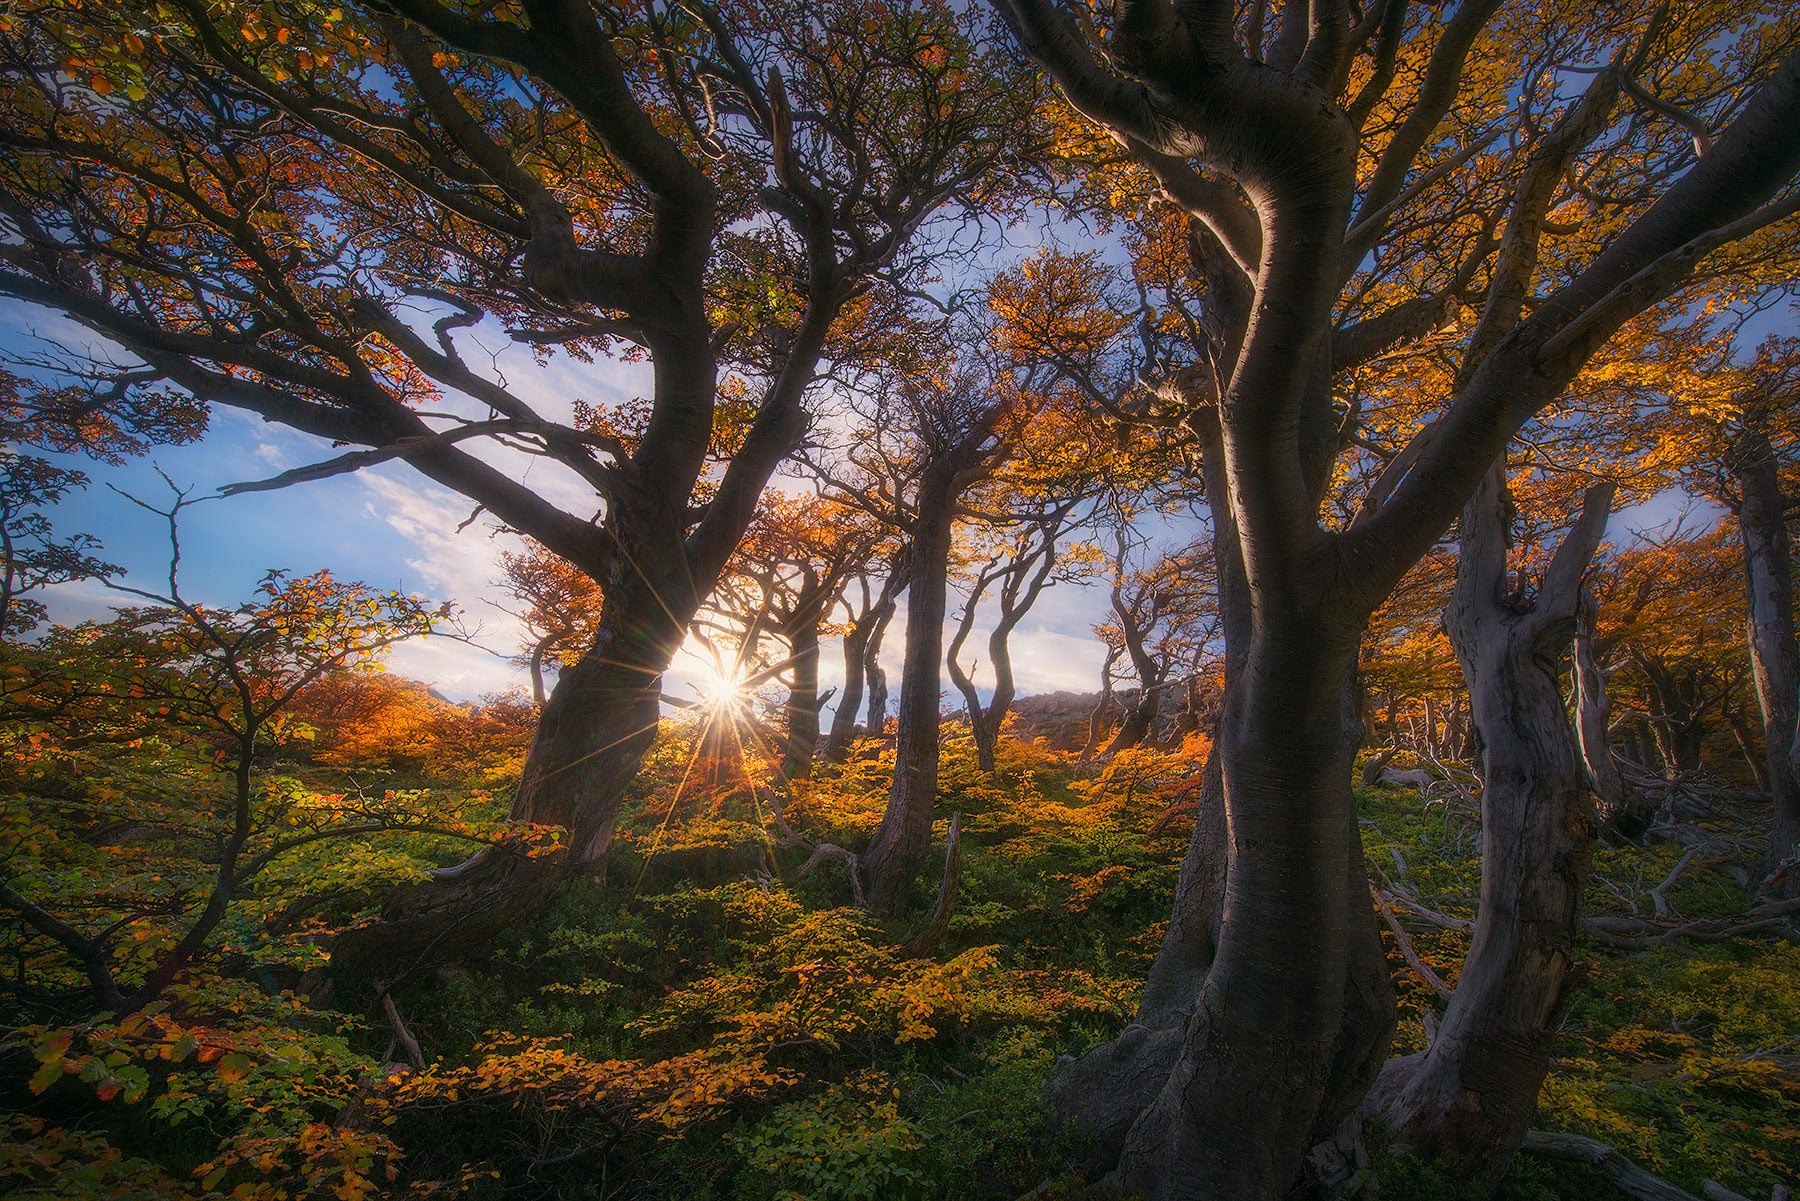 forest, patagonia, autumn, fall, wind, trees, gnarled, photo